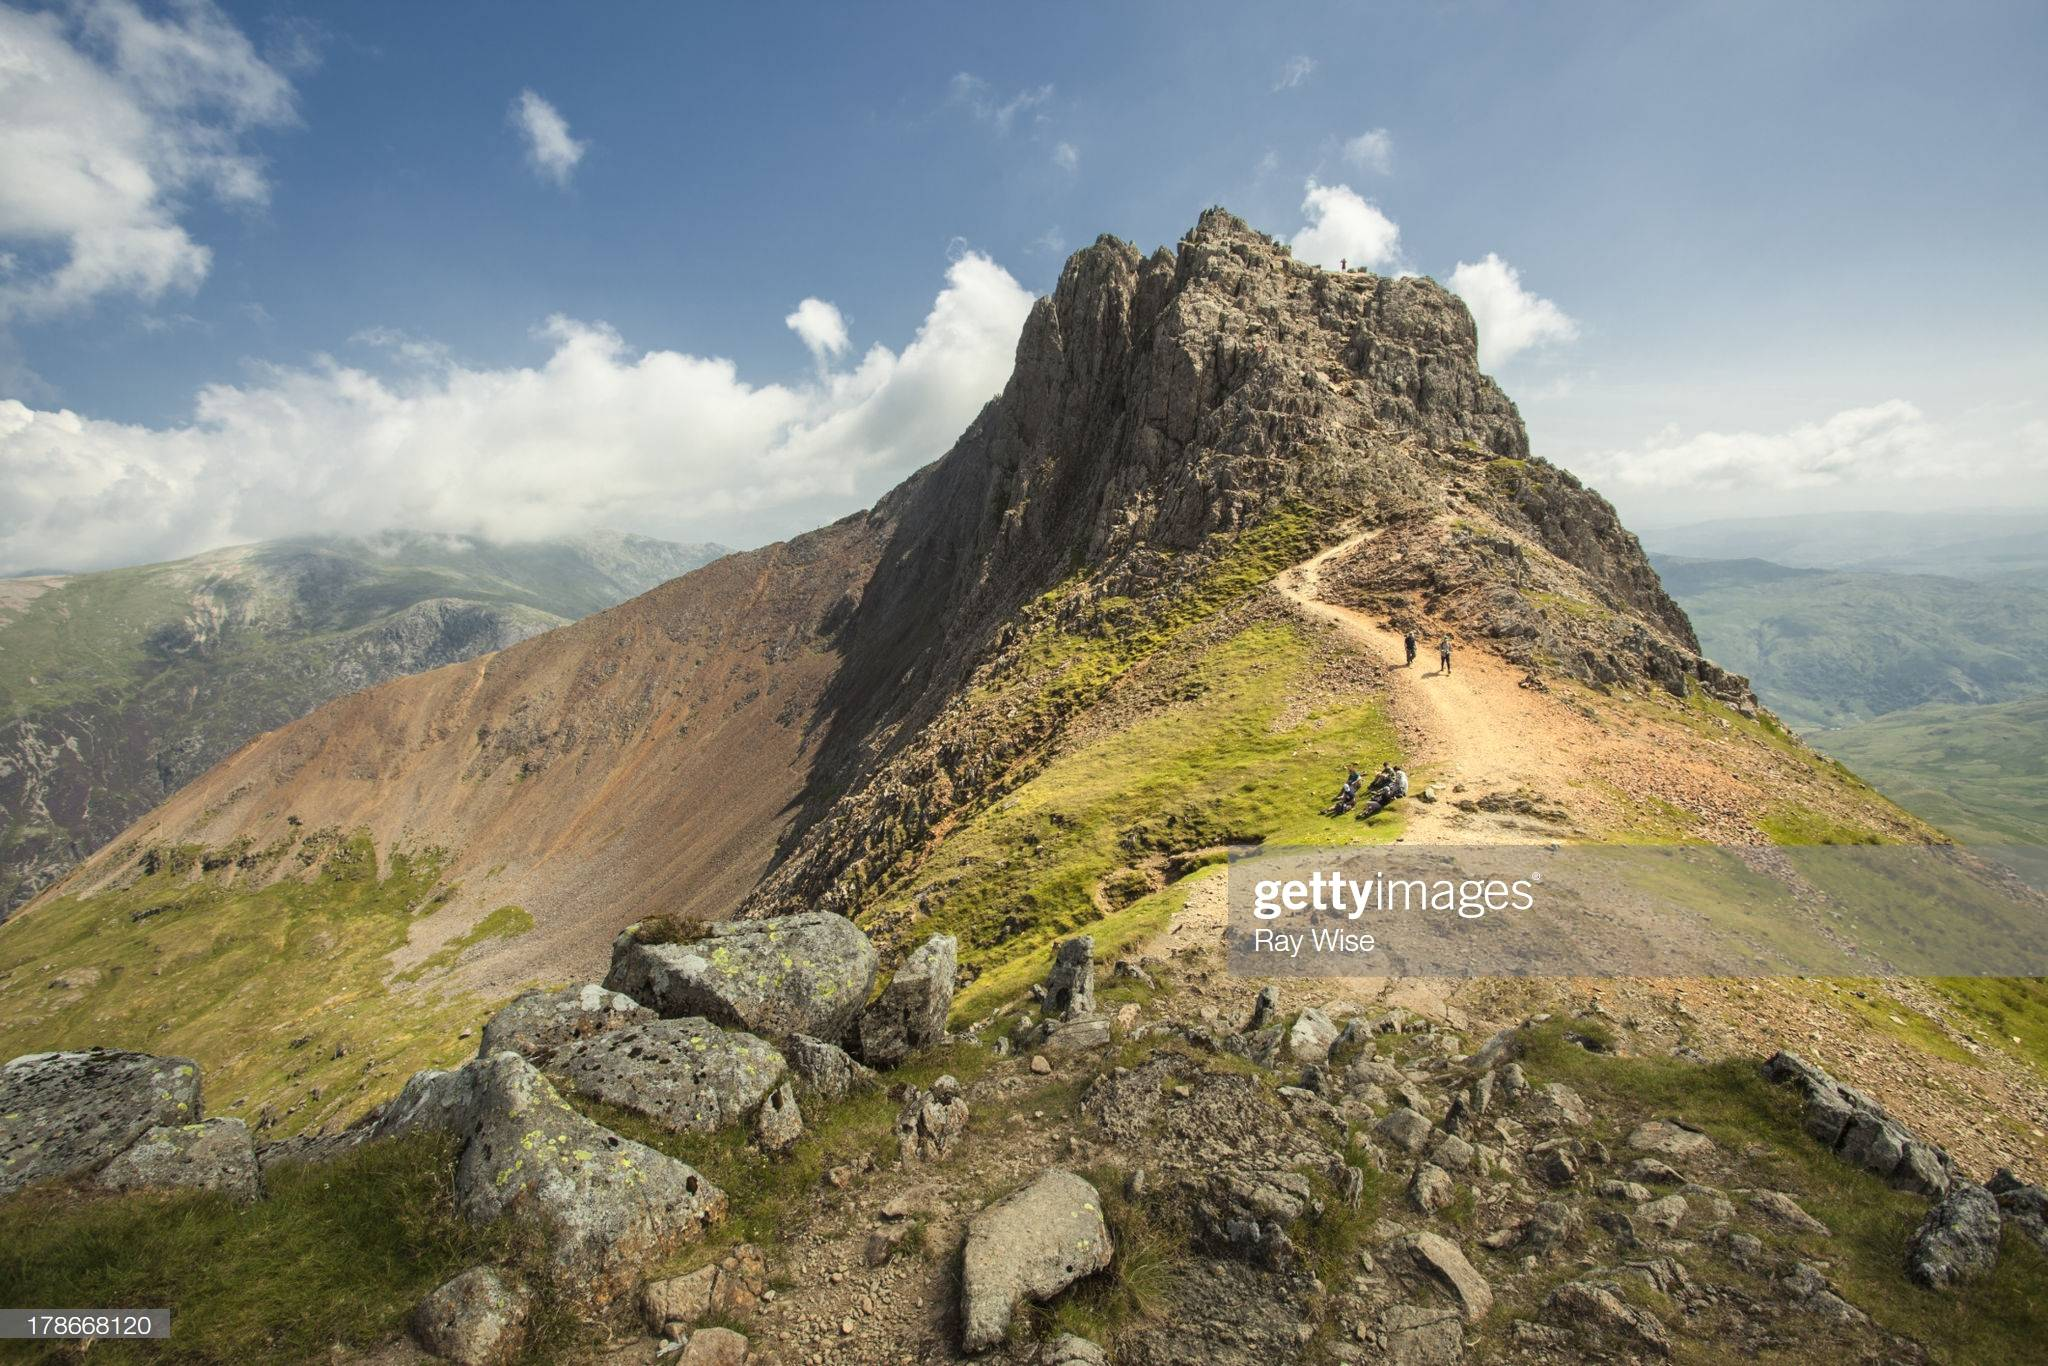 One of the most famous walks in the UK - a shot of the famous Crib Goch in Wales - in its splendid summer colours.